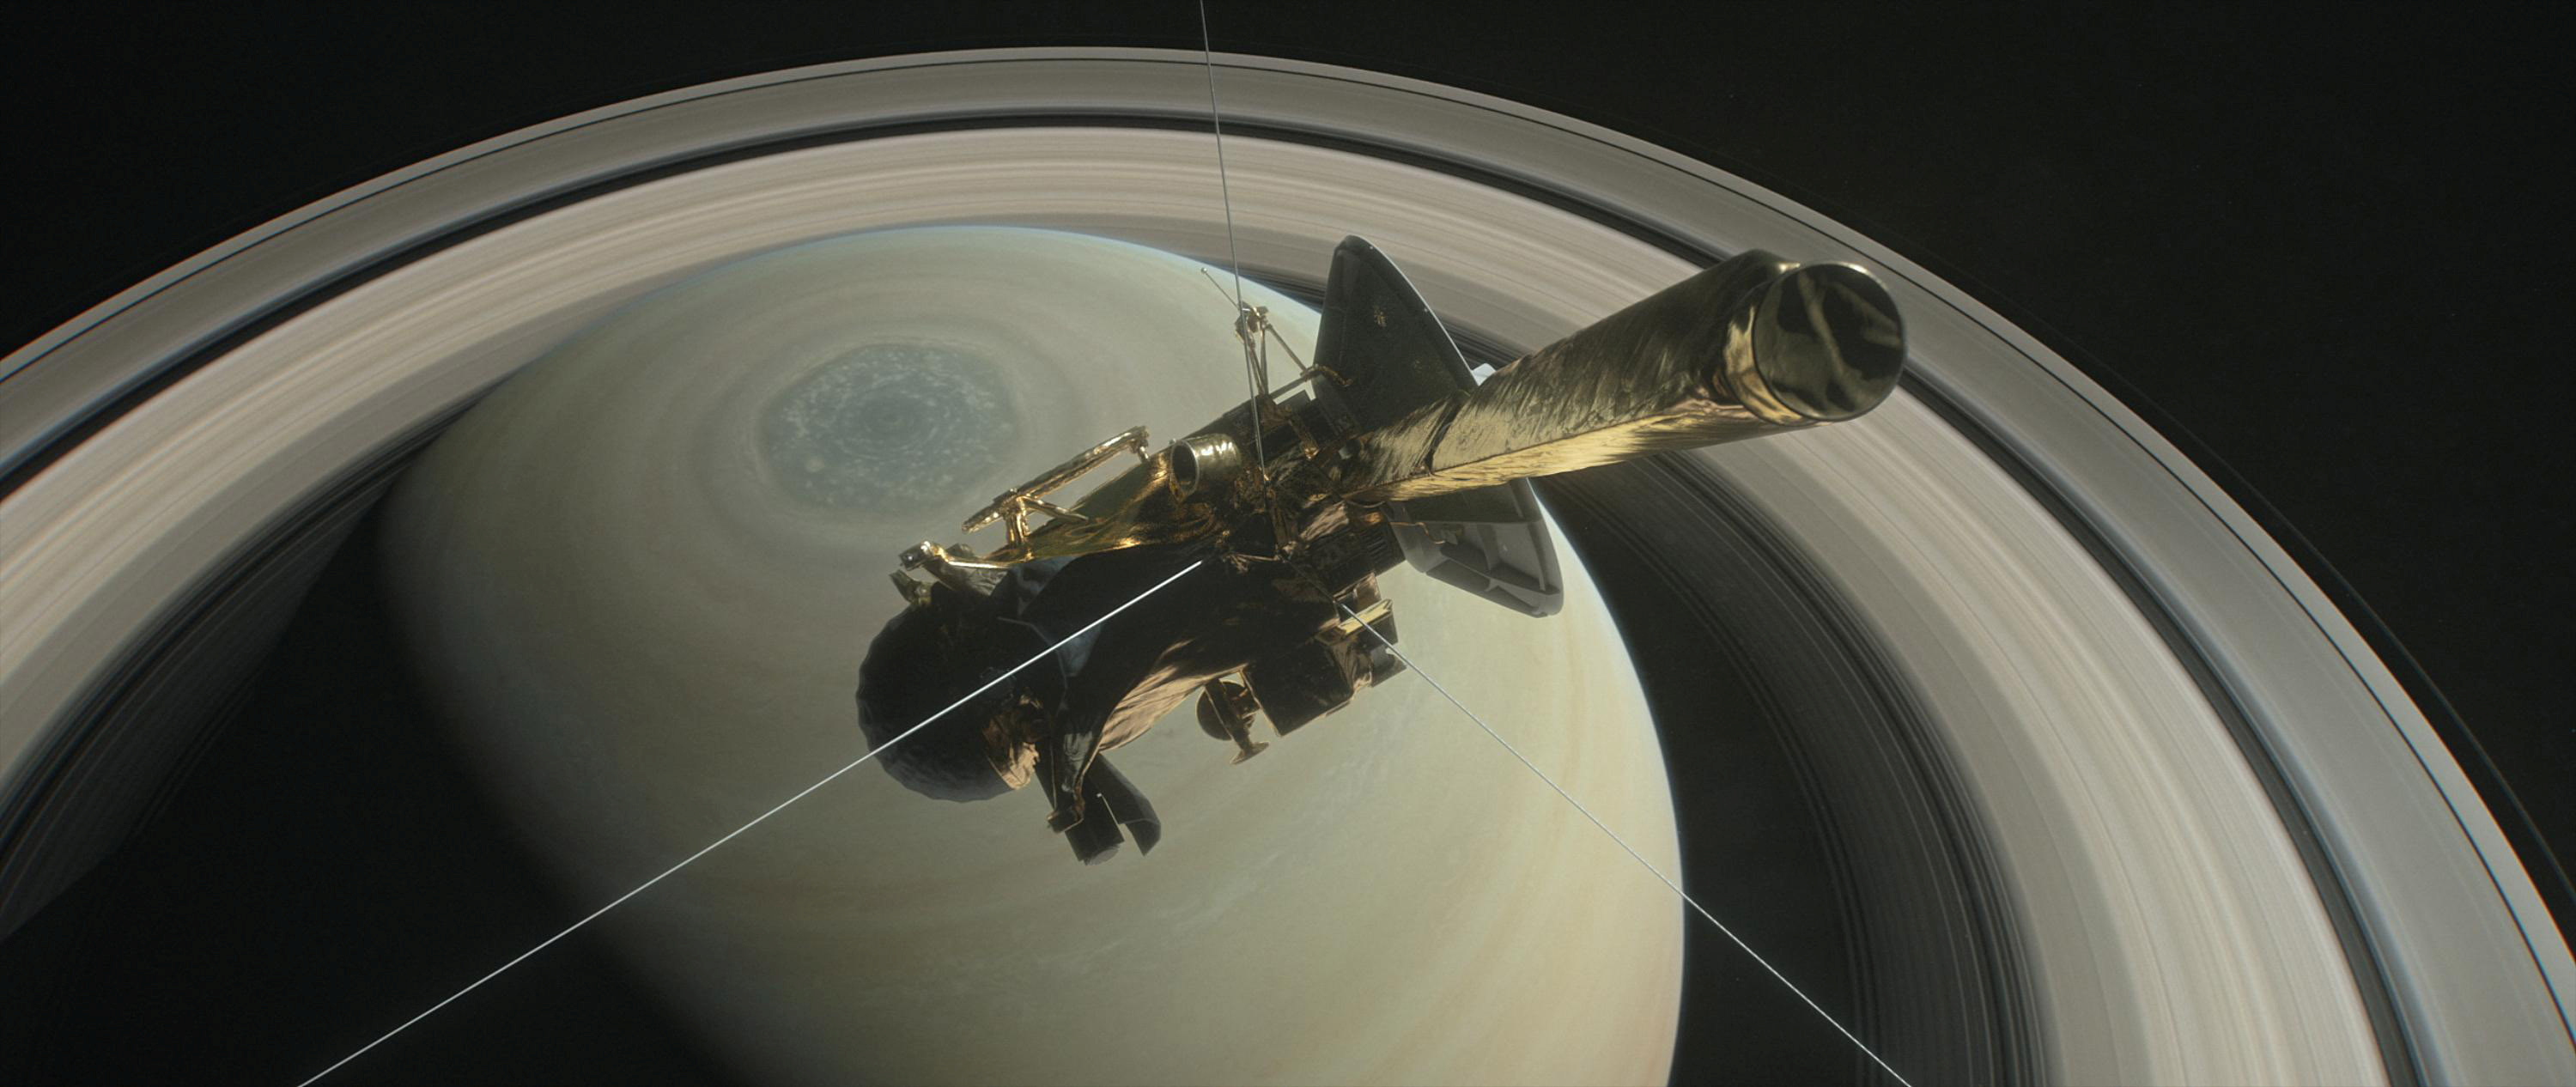 The spacecraft Cassini is pictured above Saturn's northern hemisphere prior to making one of its Grand Finale dives